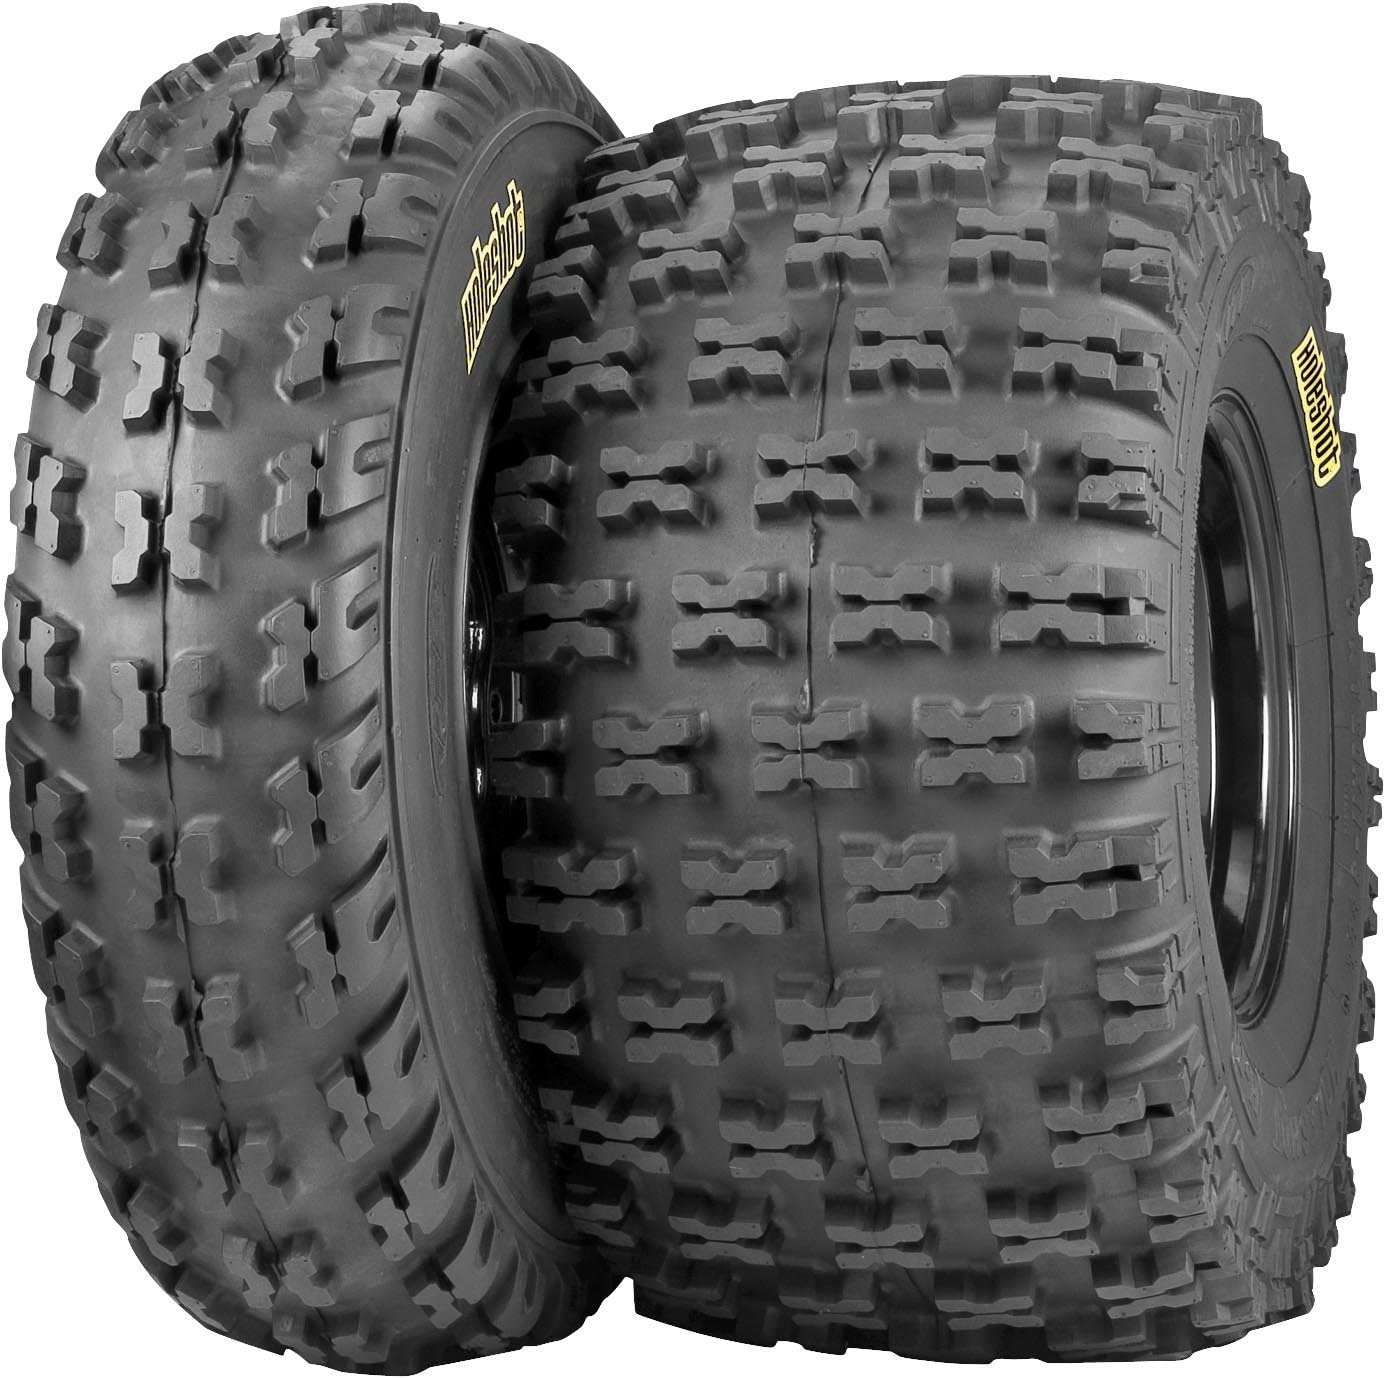 ITP Holeshot 20x11-10 ATV Tire 20x11x10 20-11-10